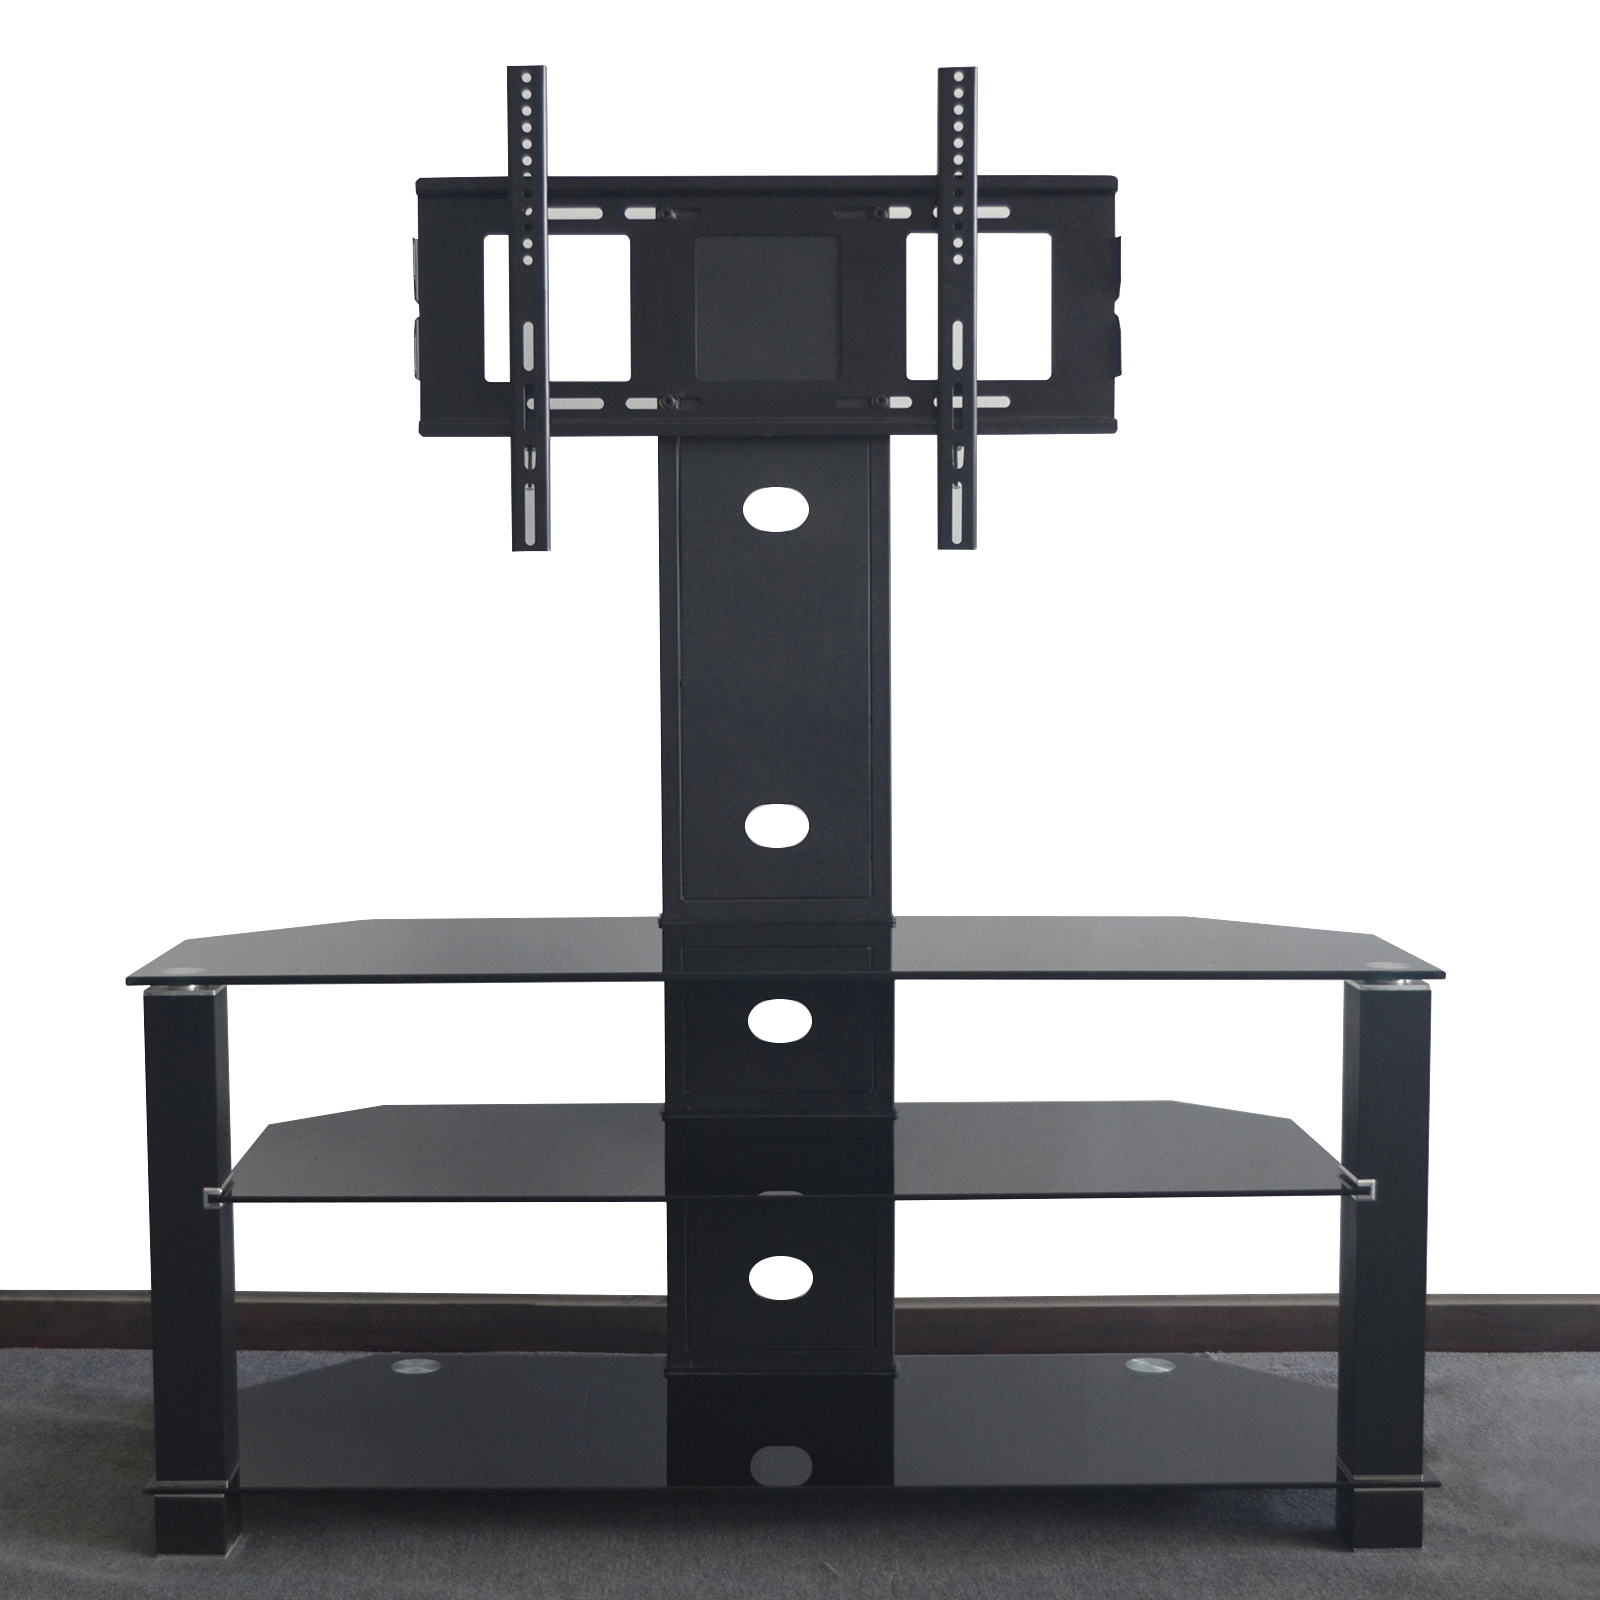 Cantilever Glass Tv Stand With Swivel Bracket For 32 To 55 Inches Tv With Trendy Cantilever Tv Stands (View 11 of 20)